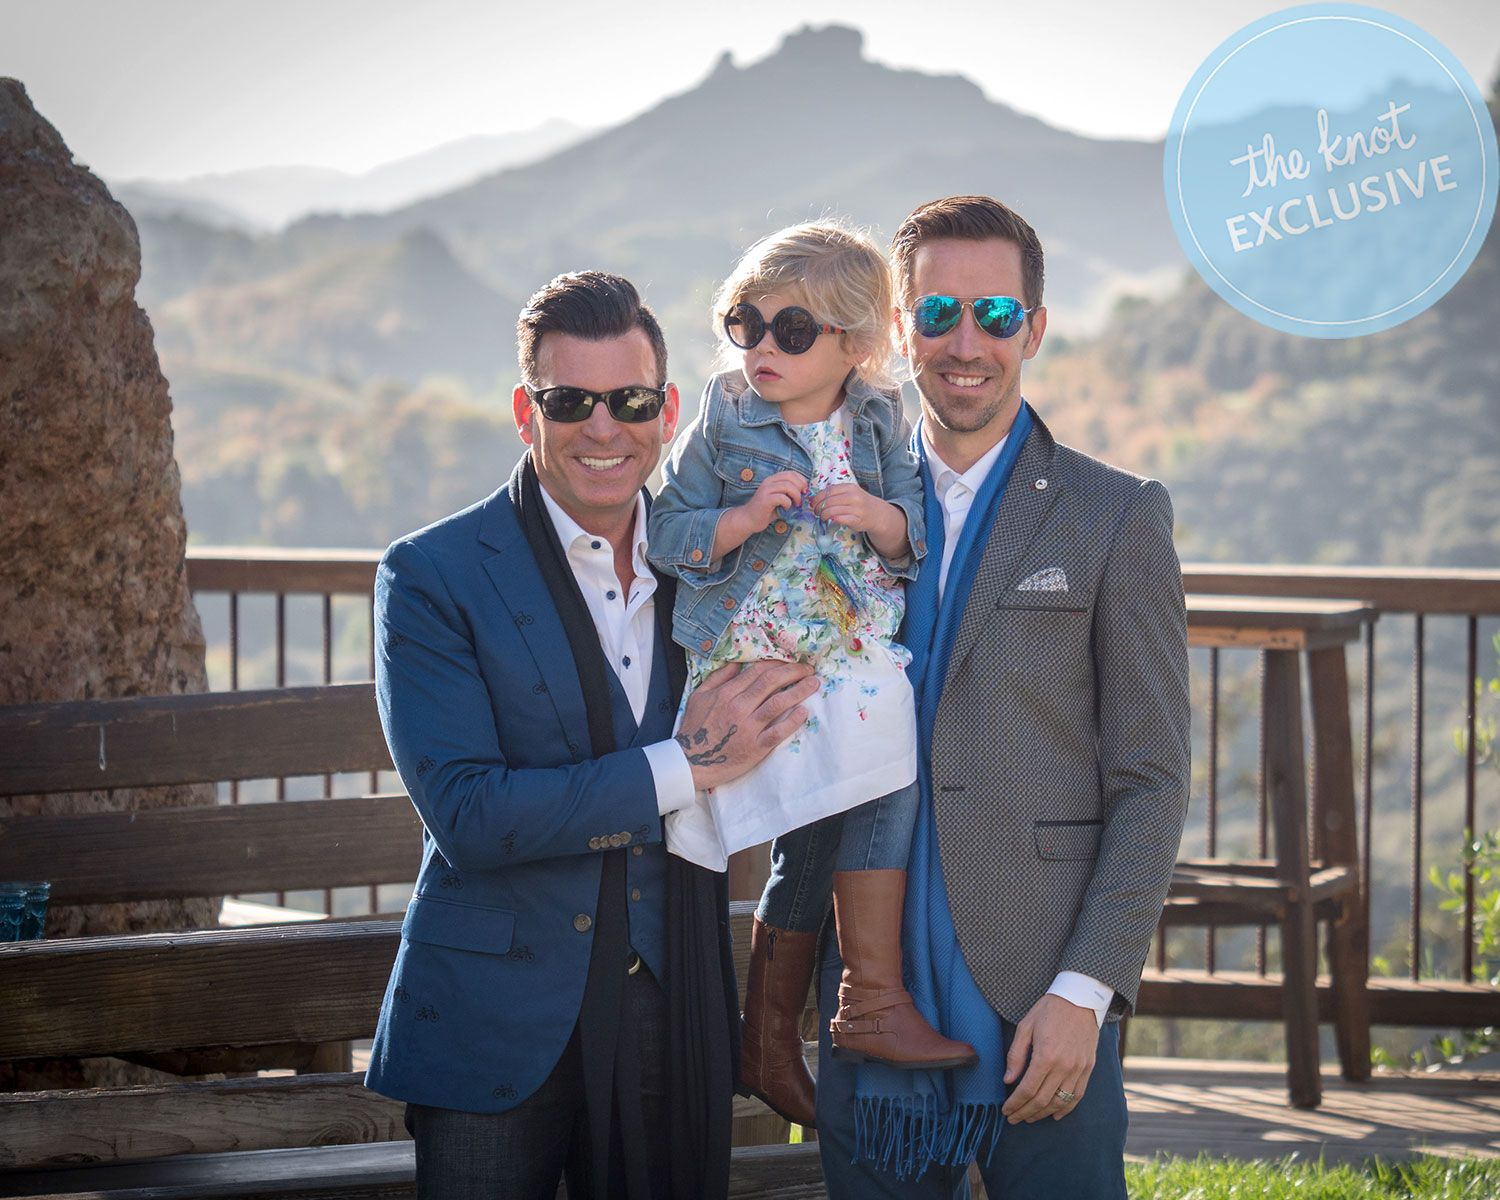 David Tutera and Joey Toth's Rehearsal Dinner Photos: Exclusive ...